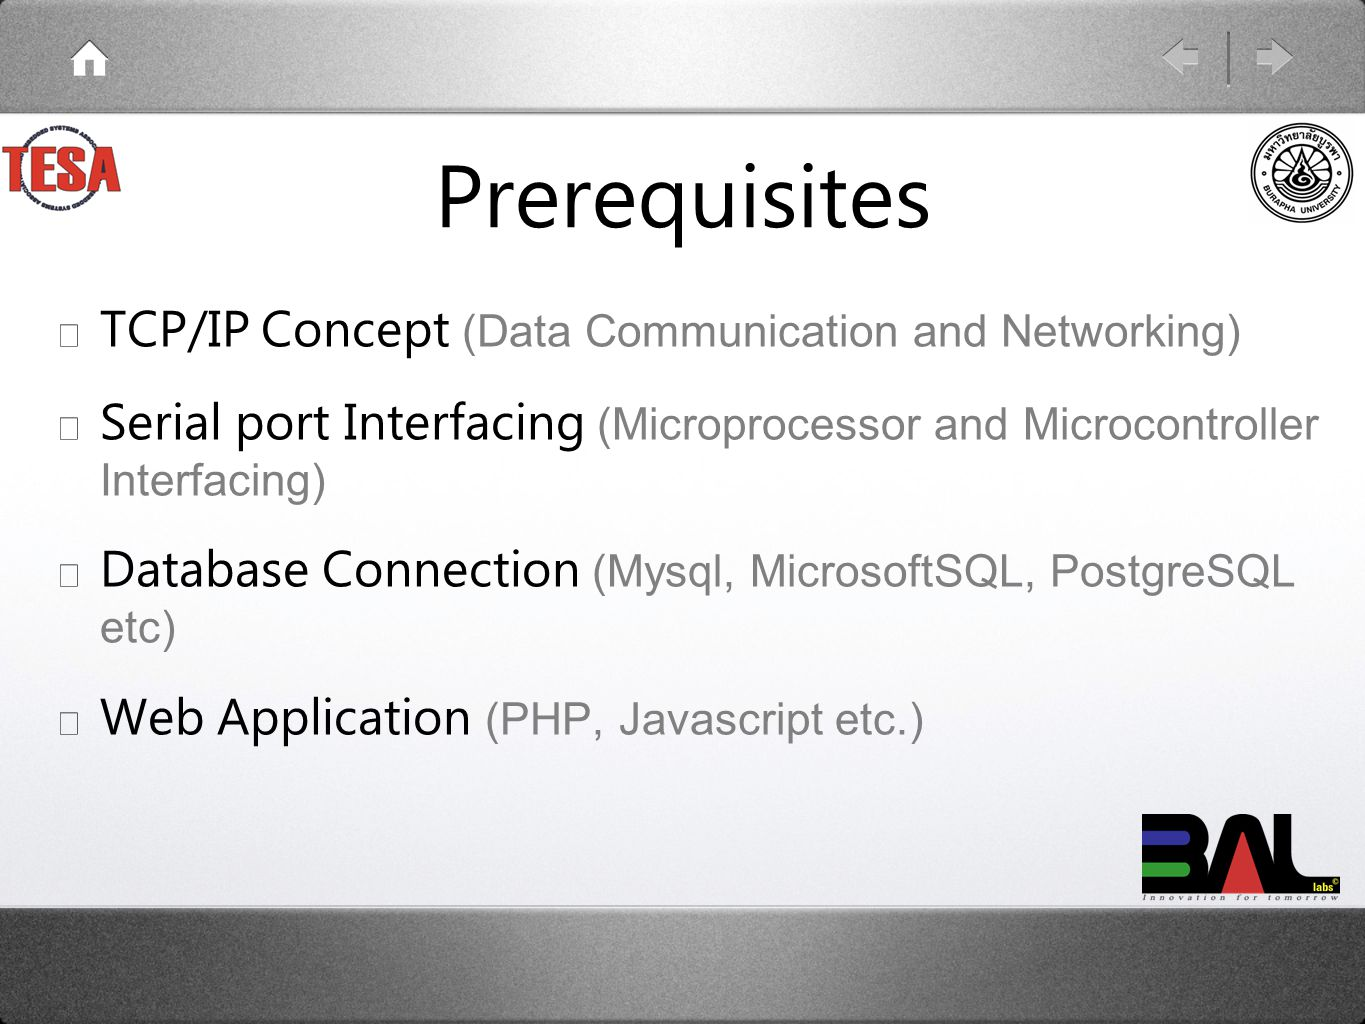 Prerequisites ★ TCP/IP Concept (Data Communication and Networking) ★ Serial port Interfacing (Microprocessor and Microcontroller Interfacing) ★ Database Connection (Mysql, MicrosoftSQL, PostgreSQL etc) ★ Web Application (PHP, Javascript etc.)